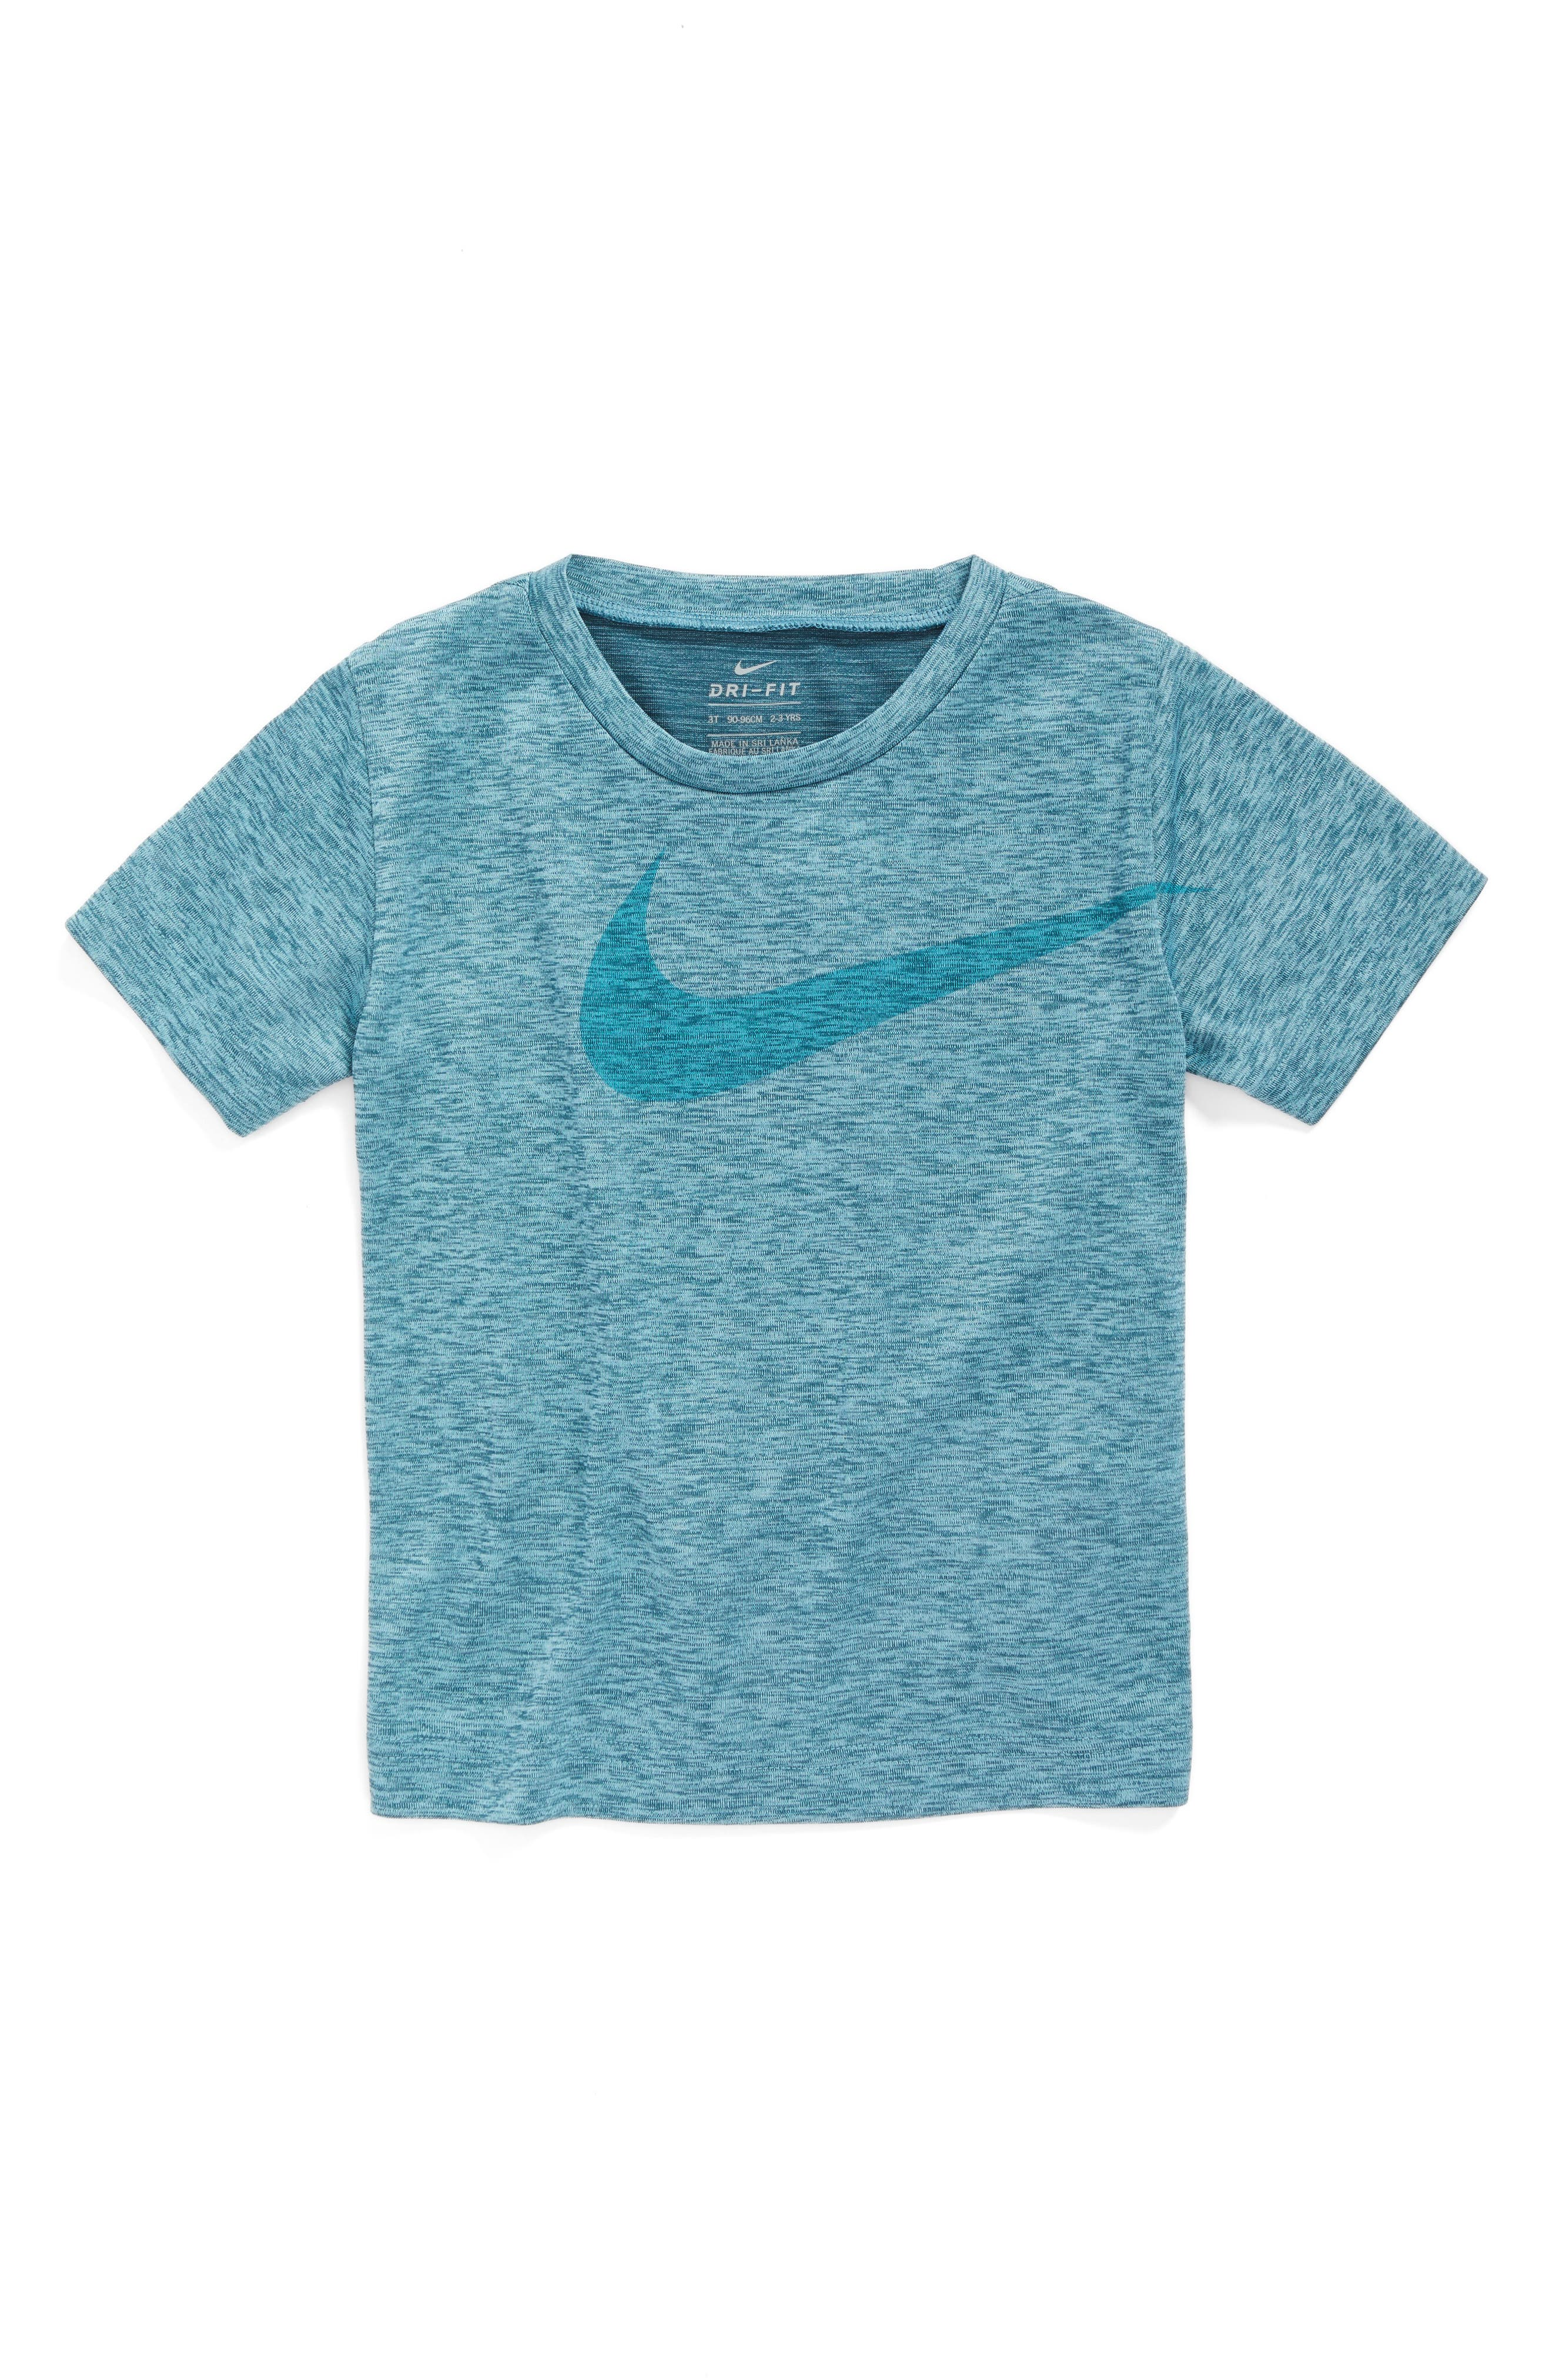 Nike Dri-FIT T-Shirt (Toddler Boys & Little Boys)